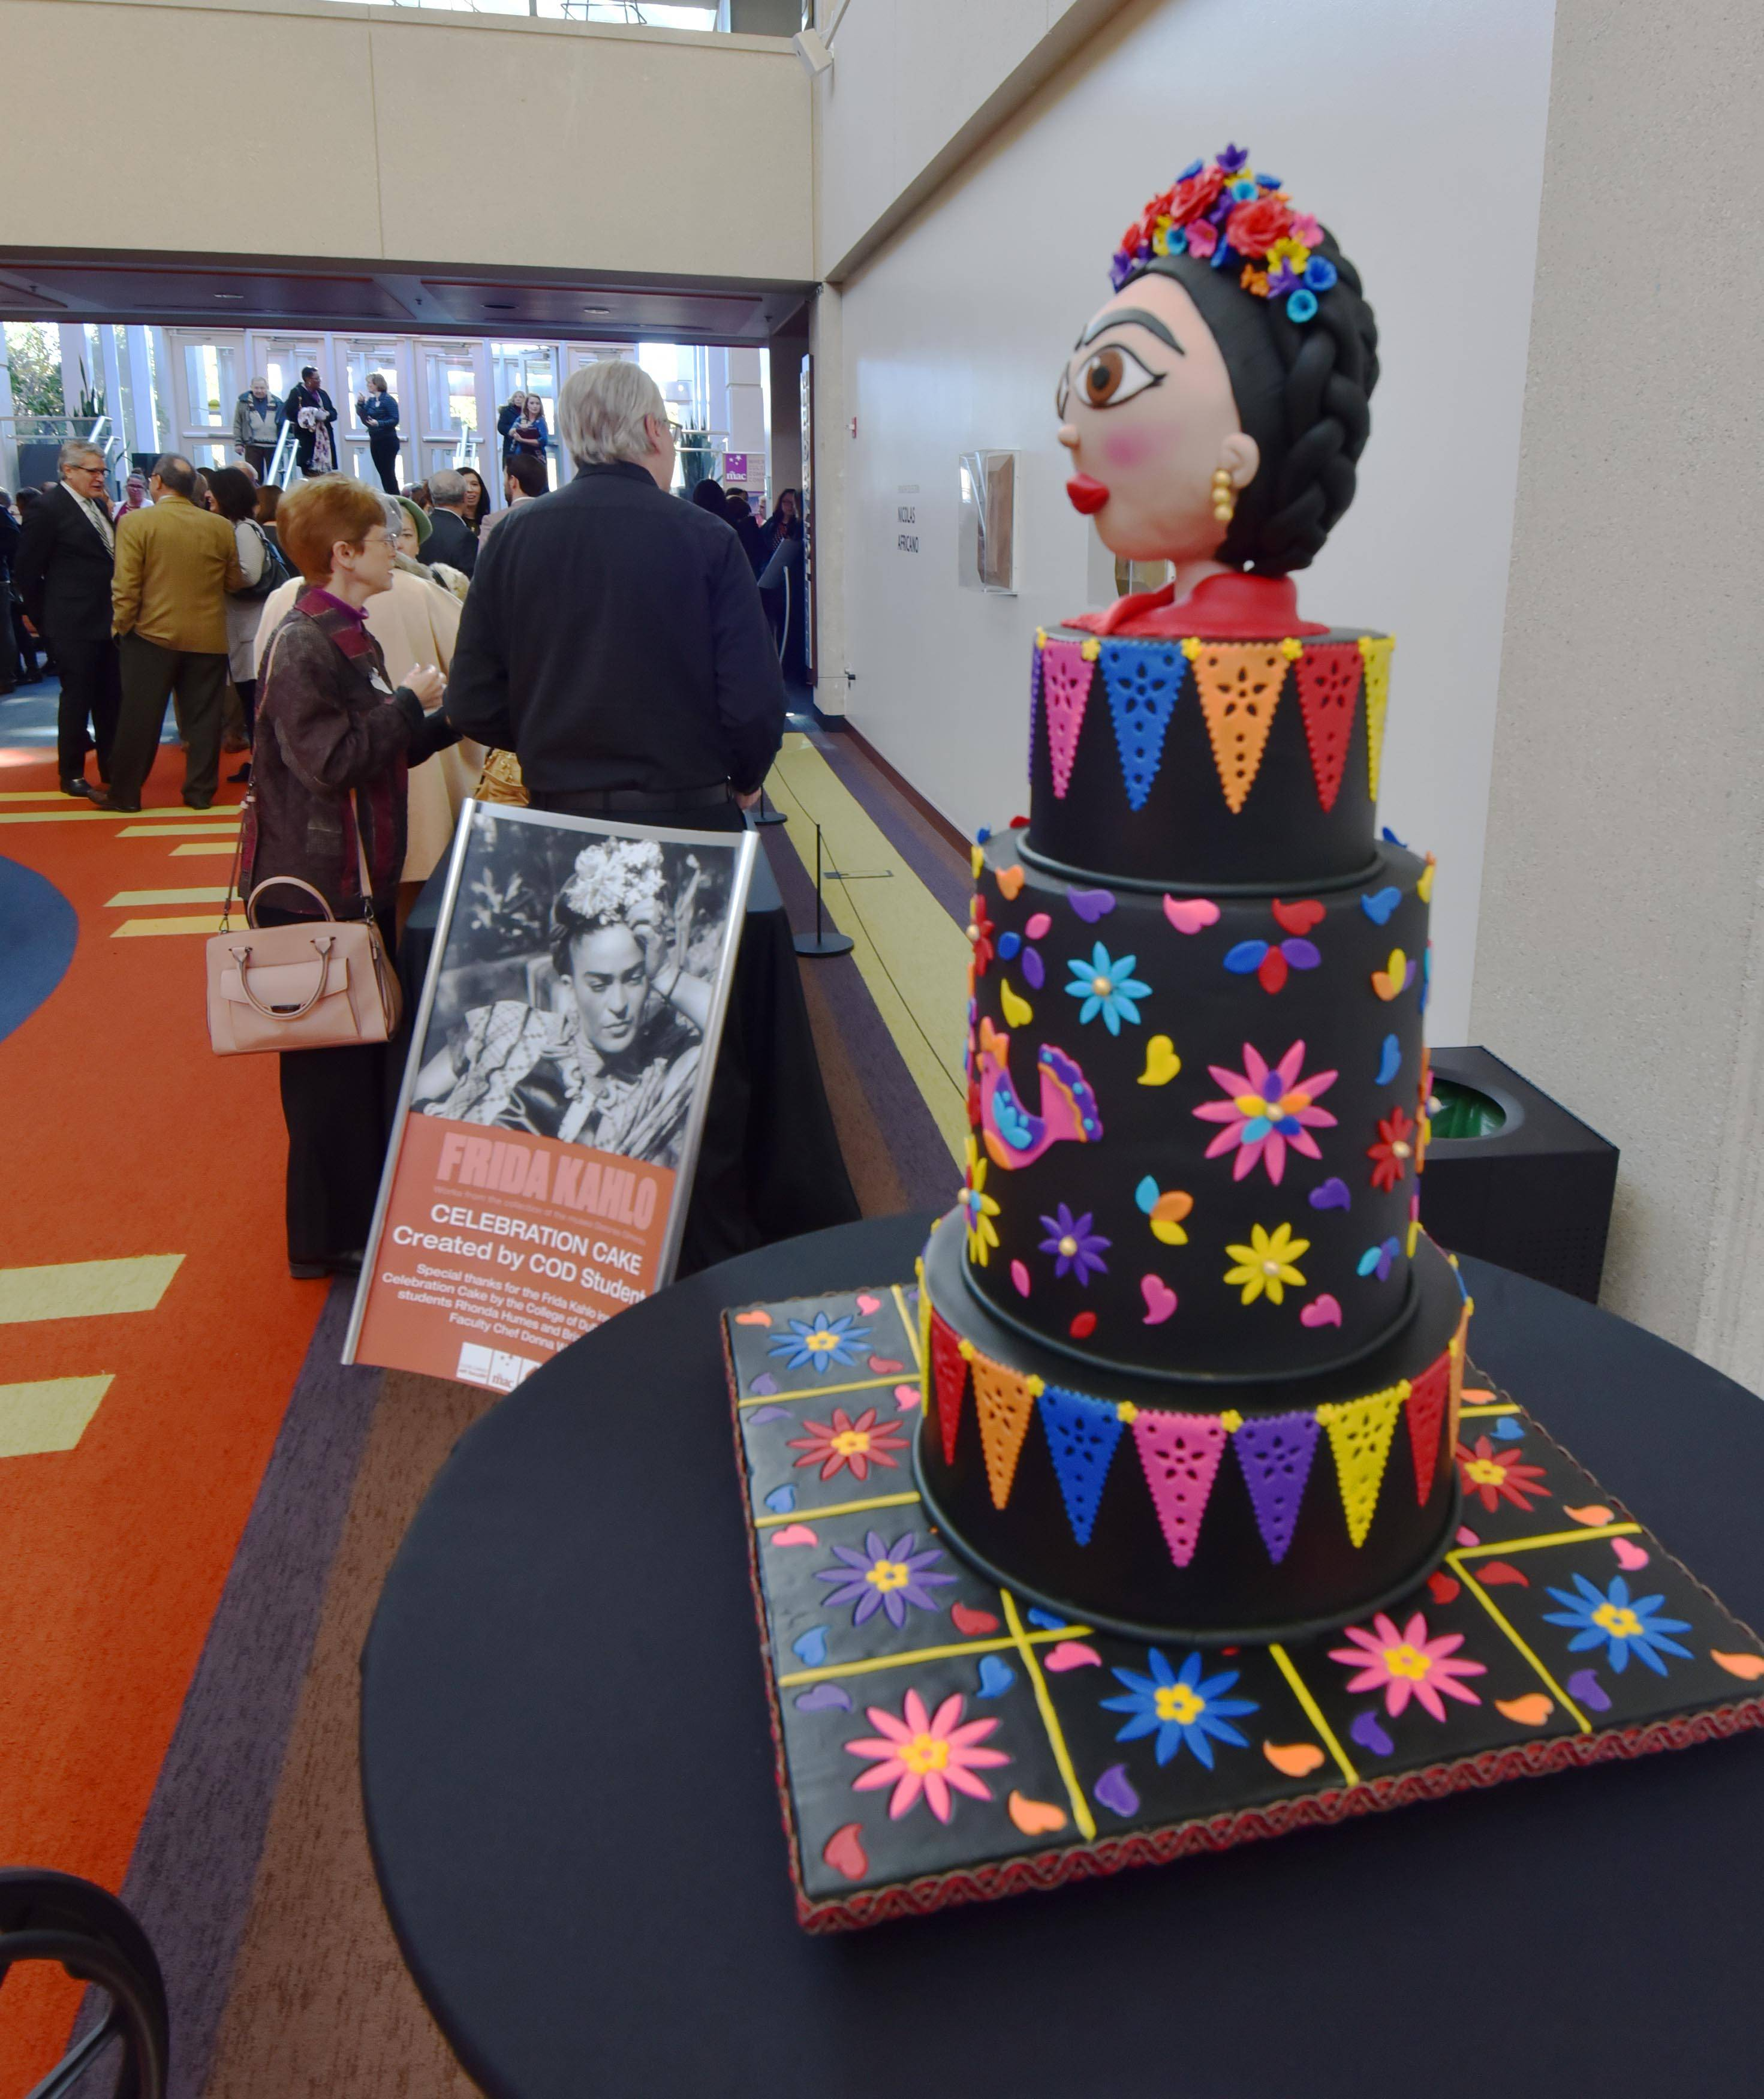 A Celebration Cake made by College of DuPage students was part of the reception.